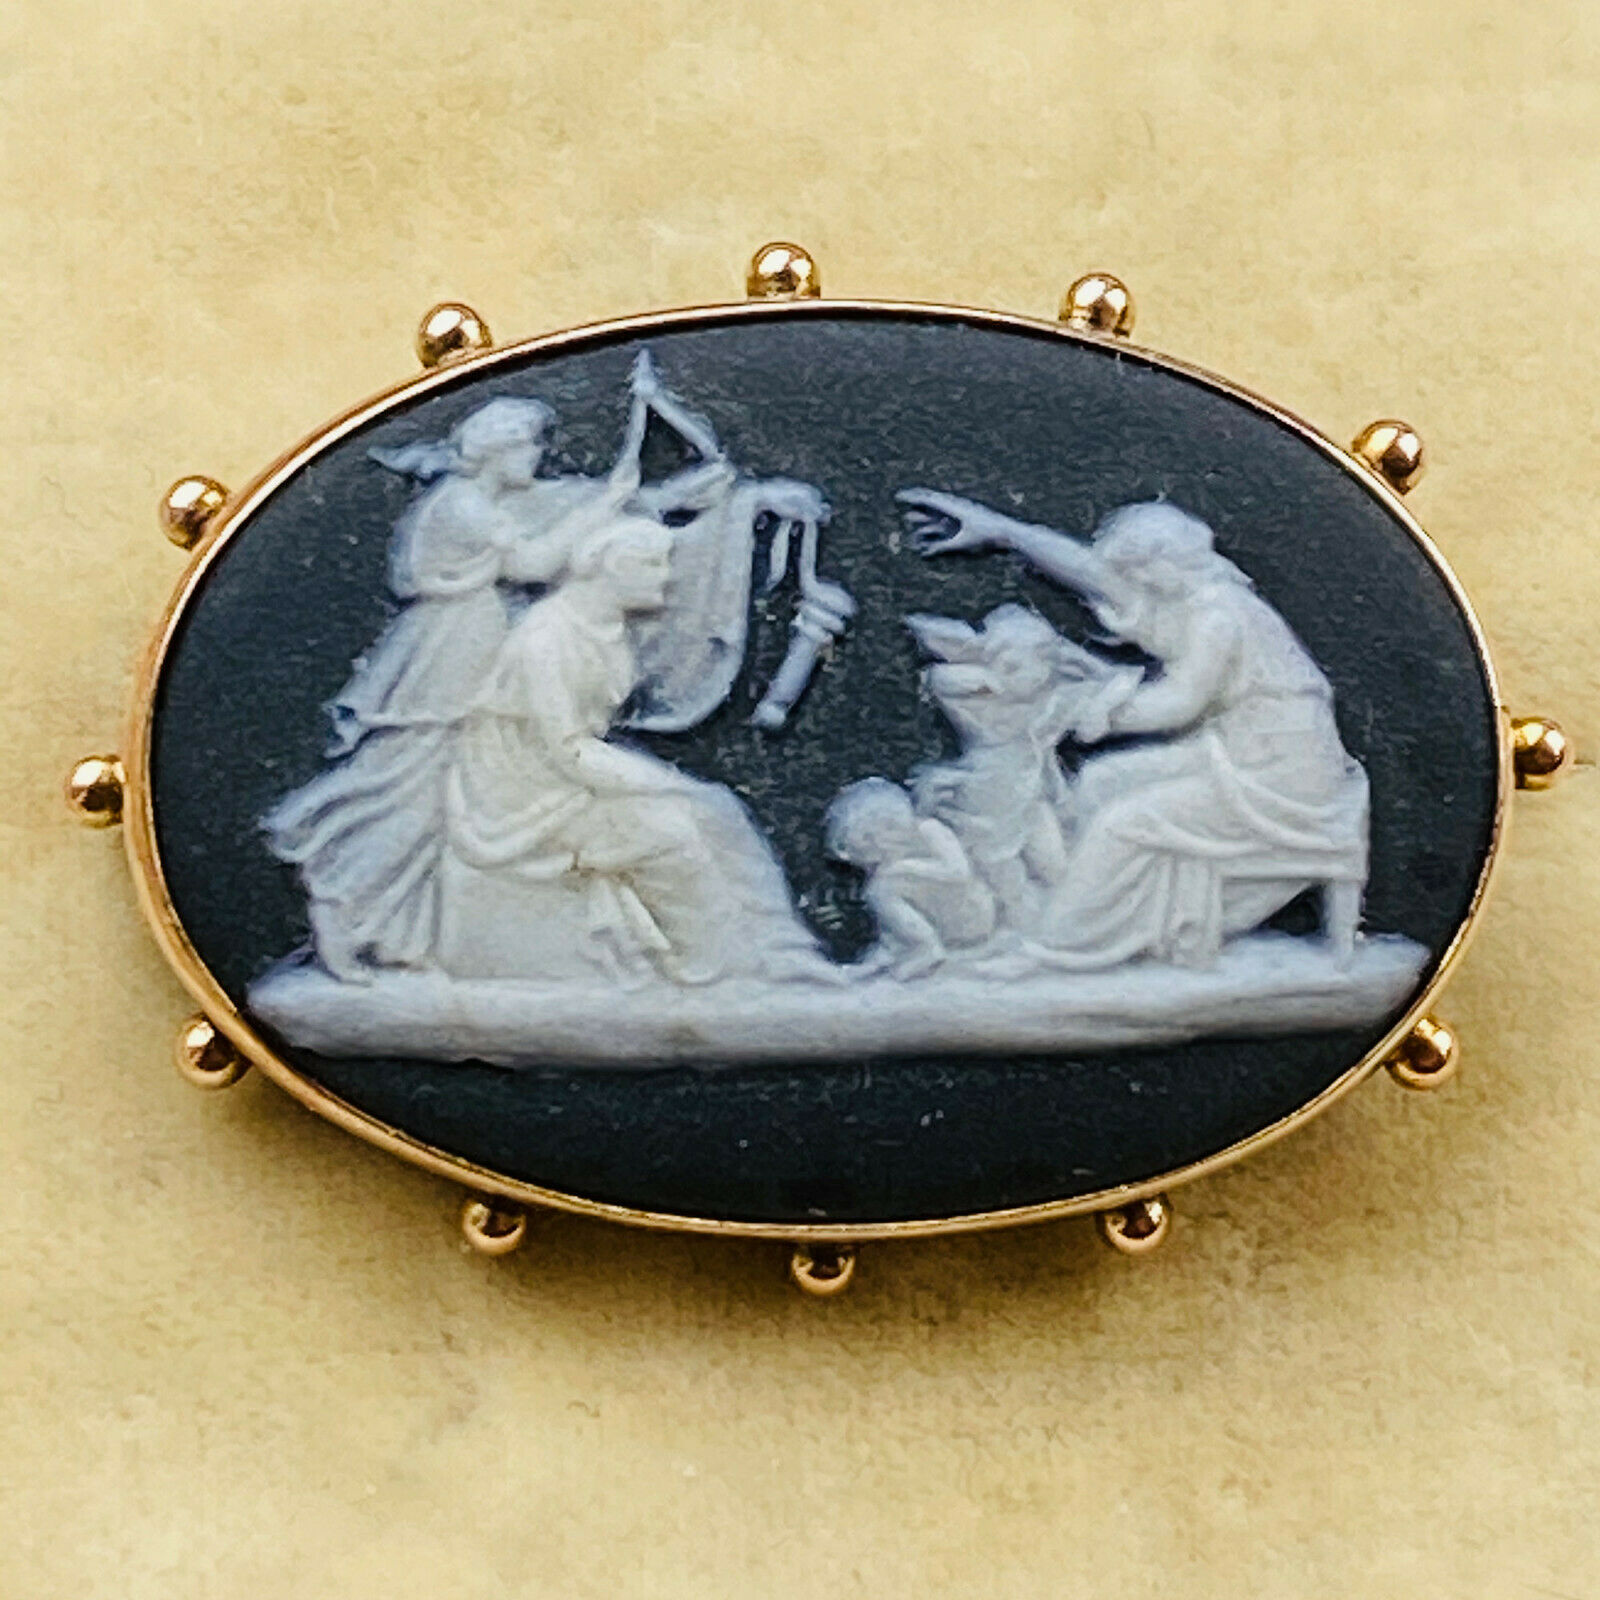 Victorian 9ct, 9k, 375 Gold Jasper ware Wedgwood brooch, Made in England 1894